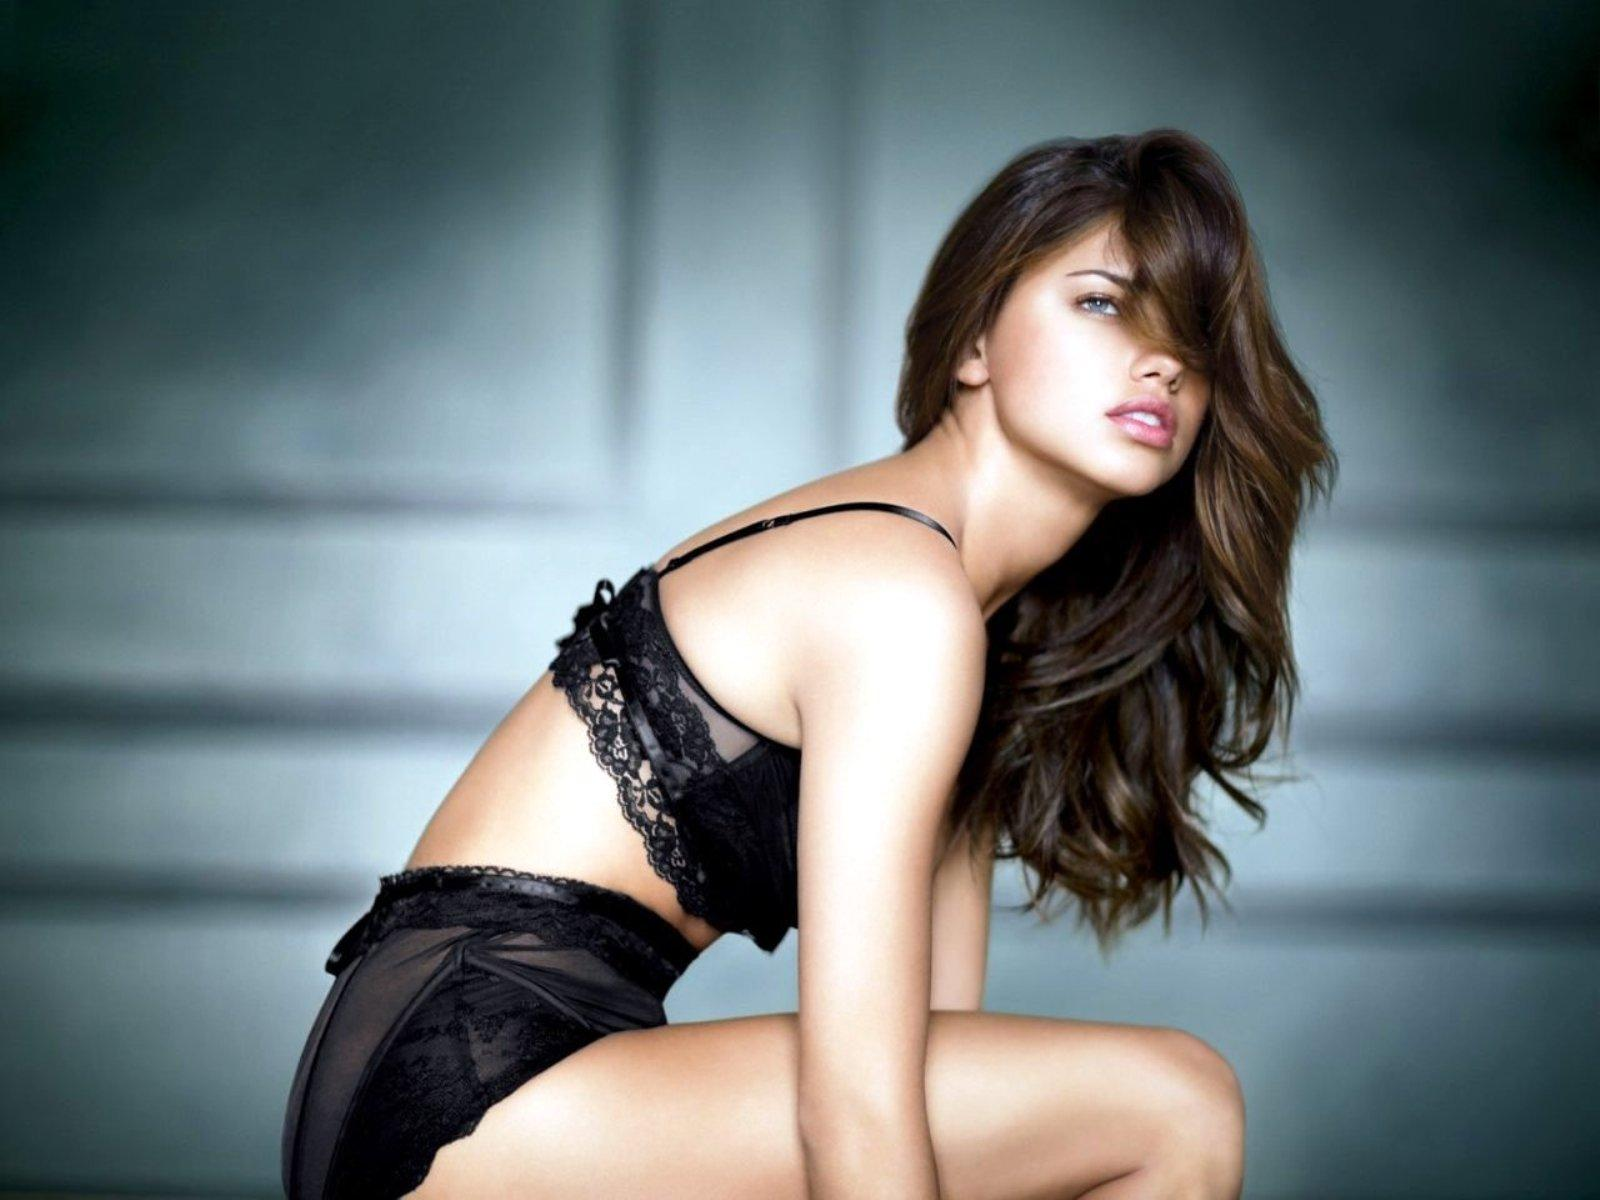 adriana lima photos - photo #33